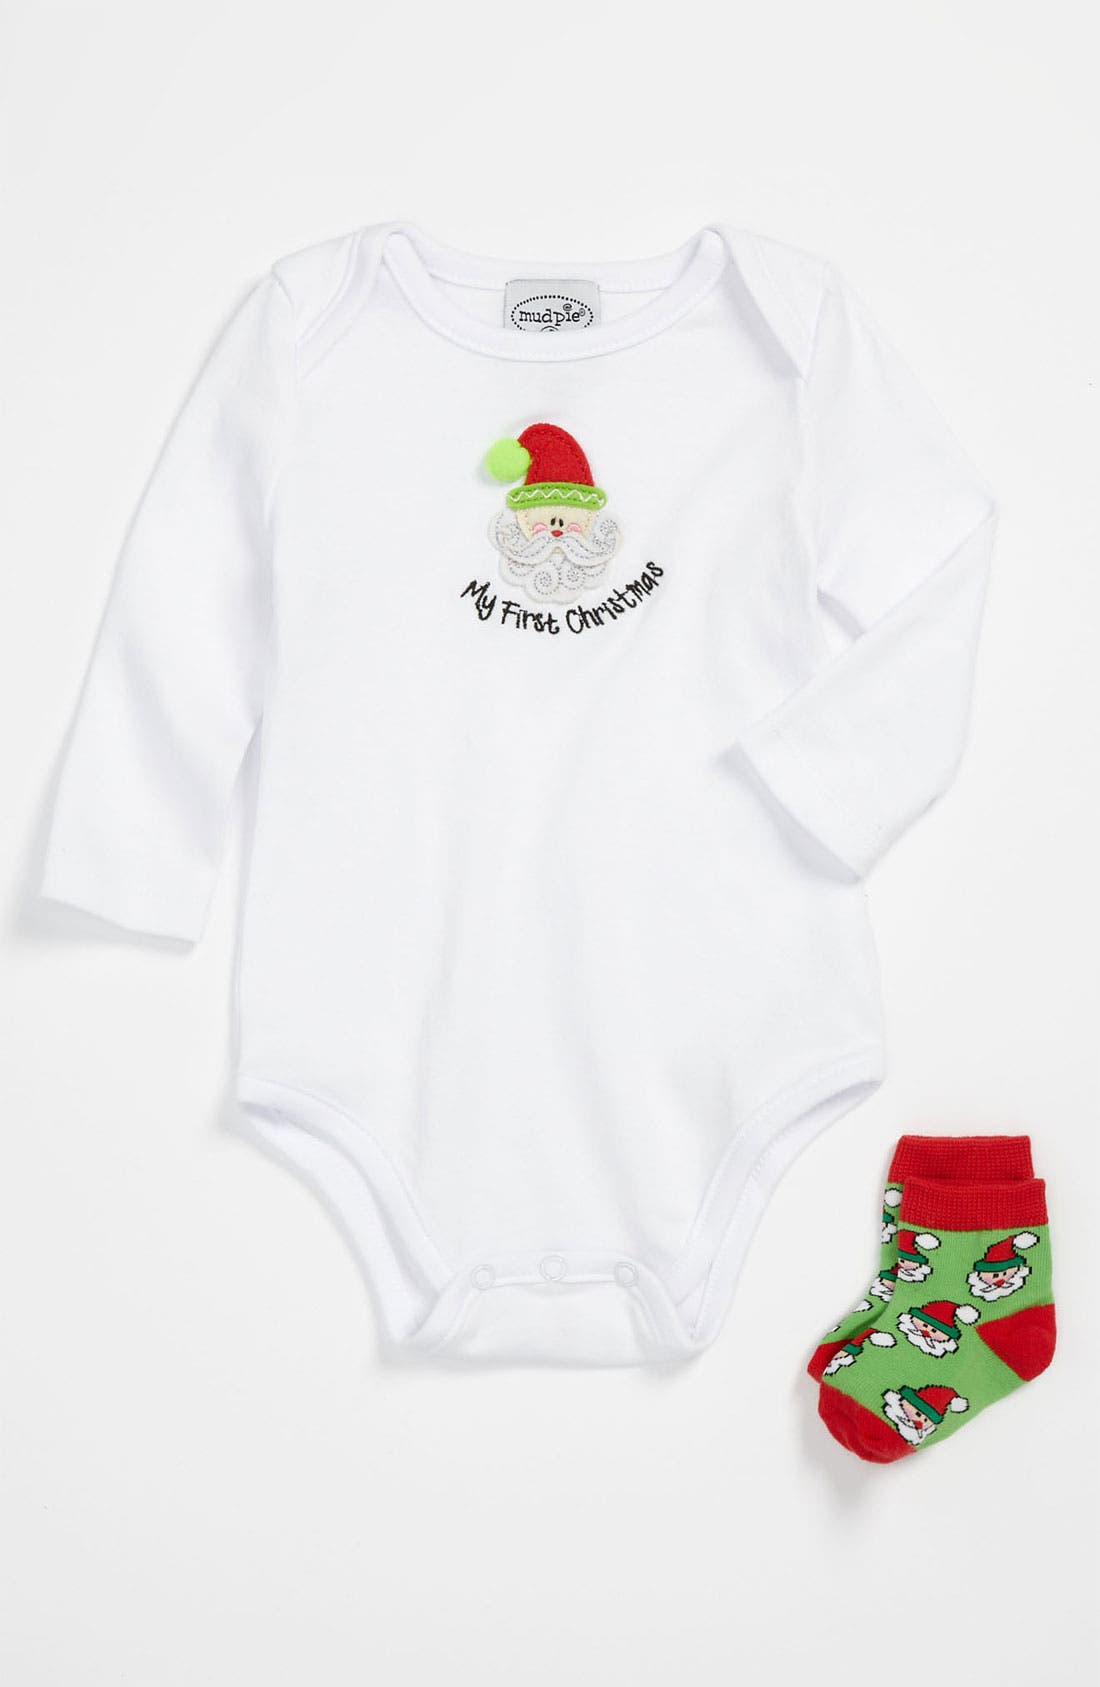 Main Image - Mud Pie 'My First Christmas' Bodysuit & Socks (Infant)